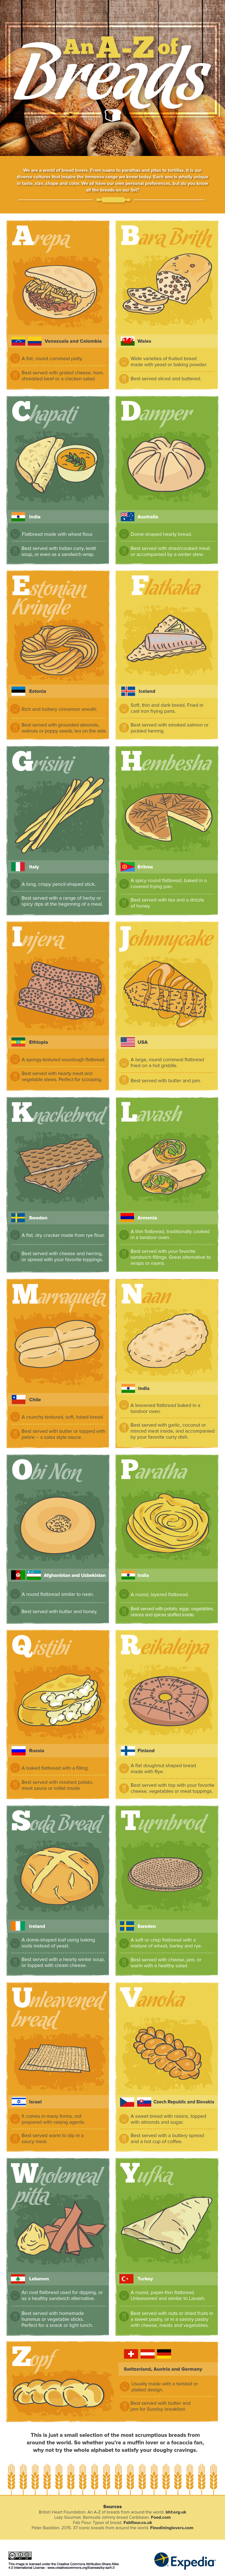 a-to-z-breads